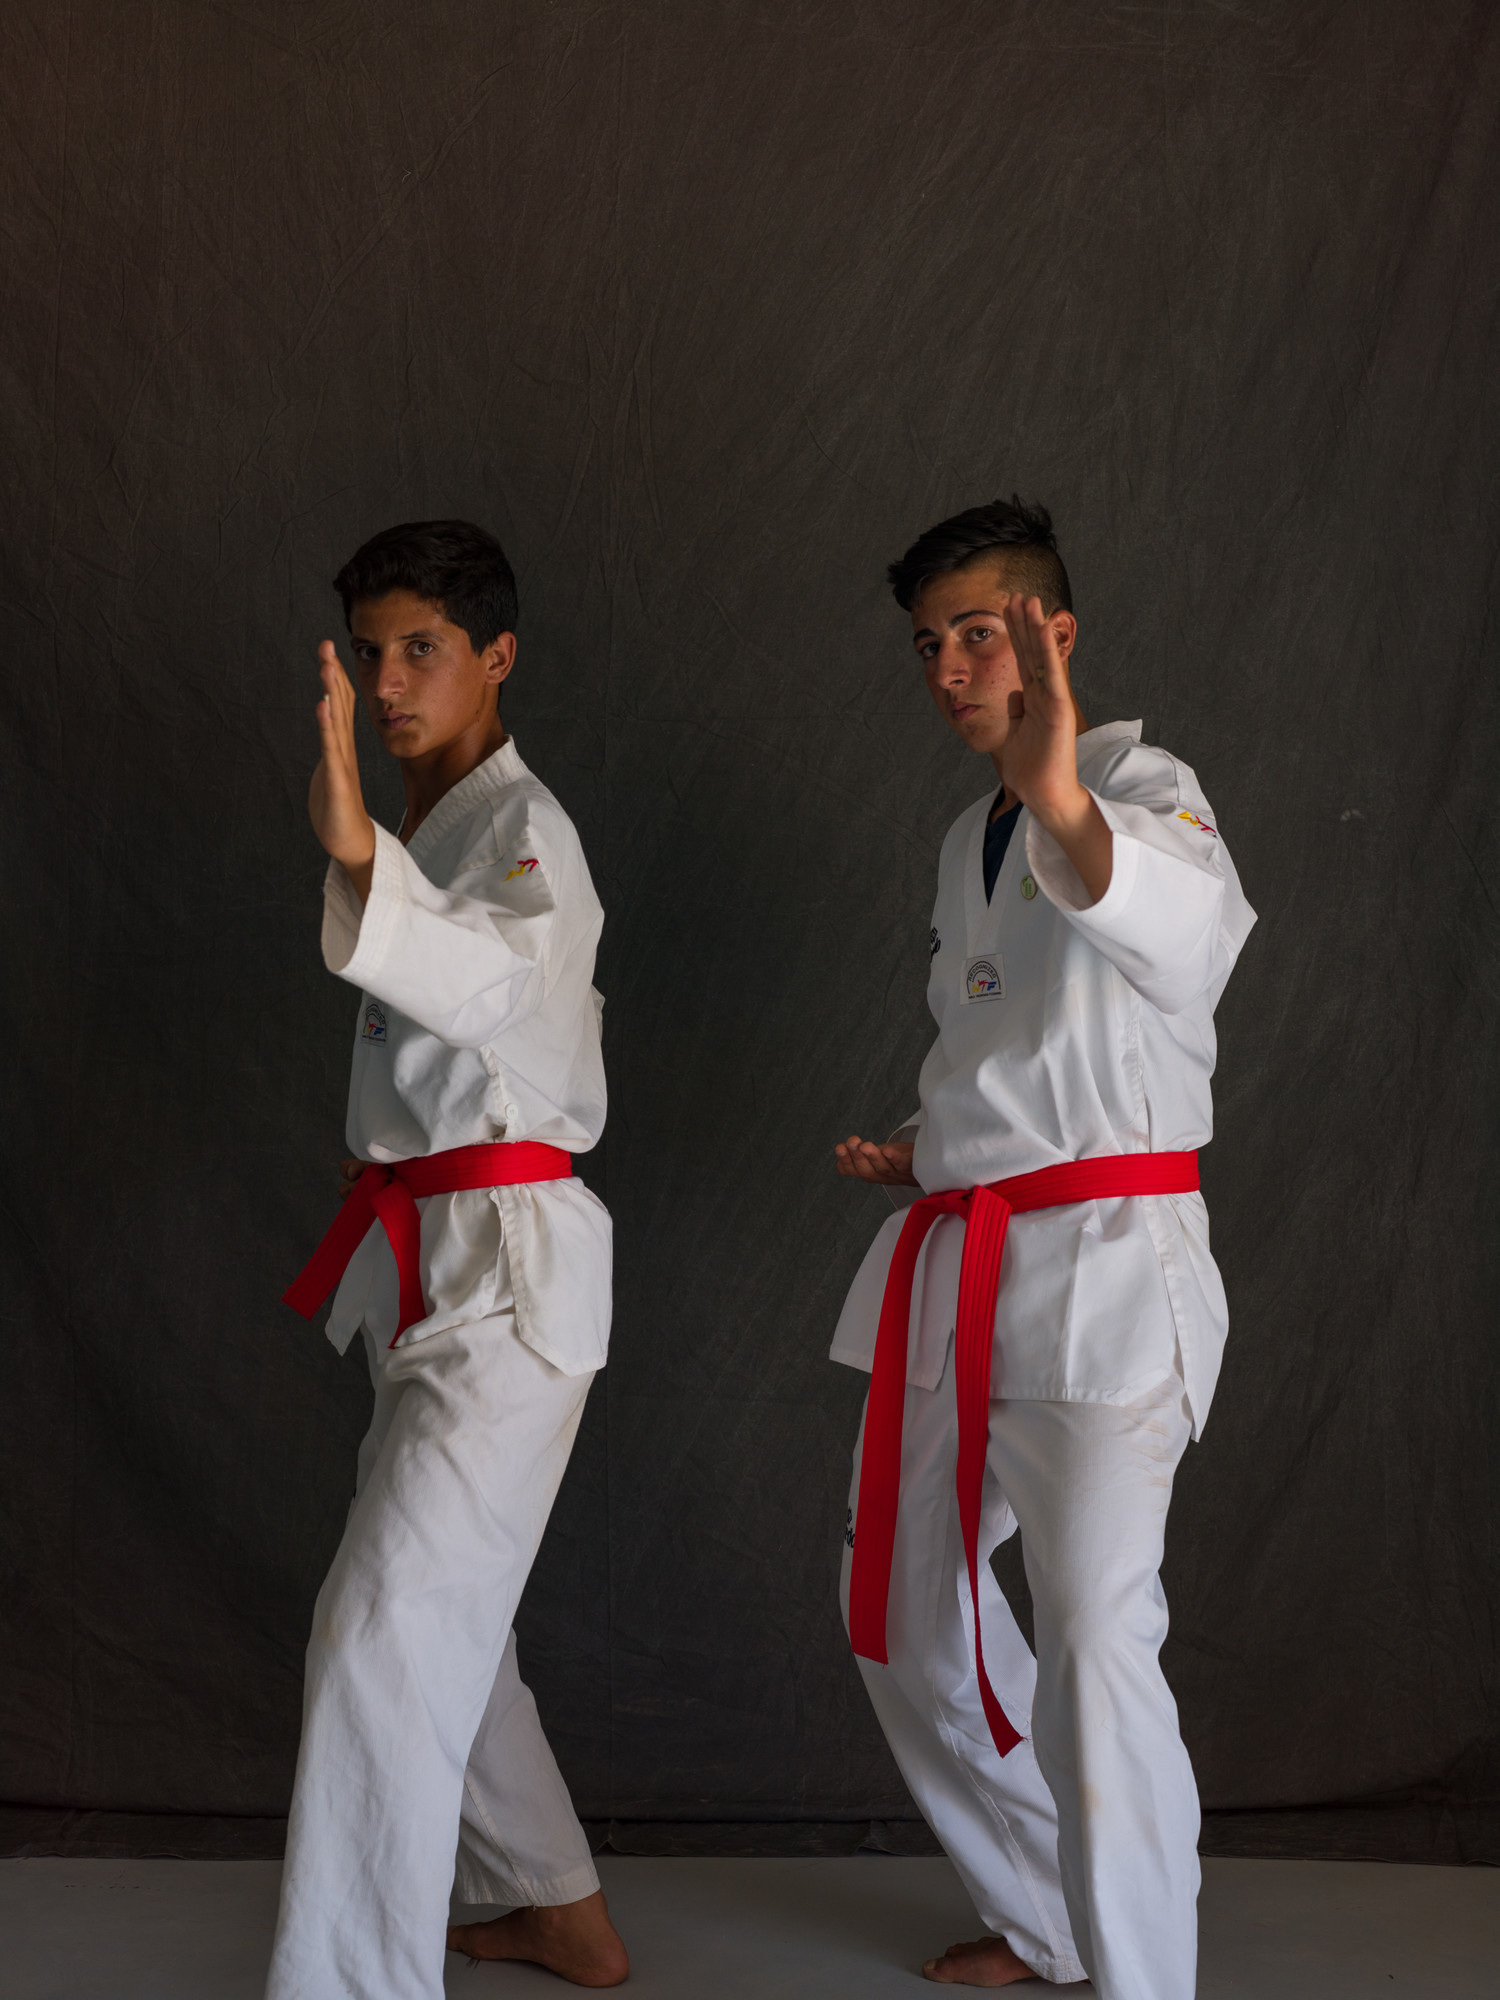 Influenced by their love of taekwondo and Bruce Lee films, Wael, left, and Abdulkareem created an action movie called